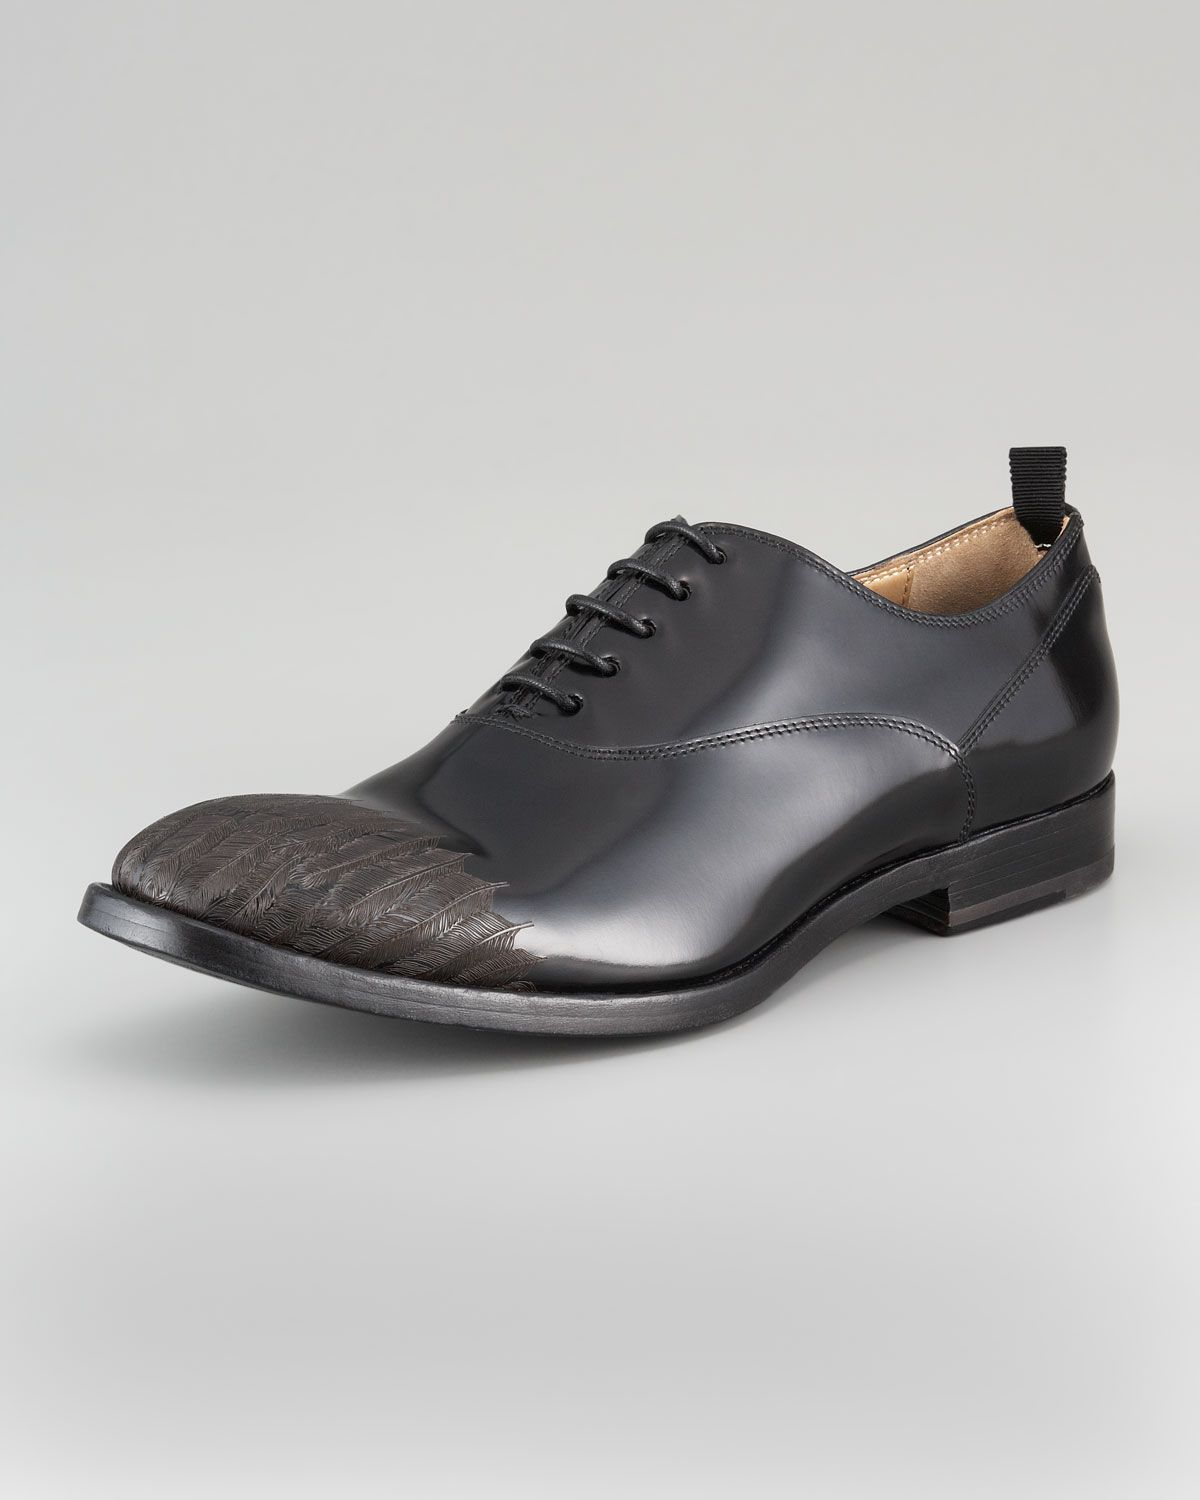 Alexander McQueen Etched Feather Lace-Up. Shoes For MenMen s ... 3c5234007ed78